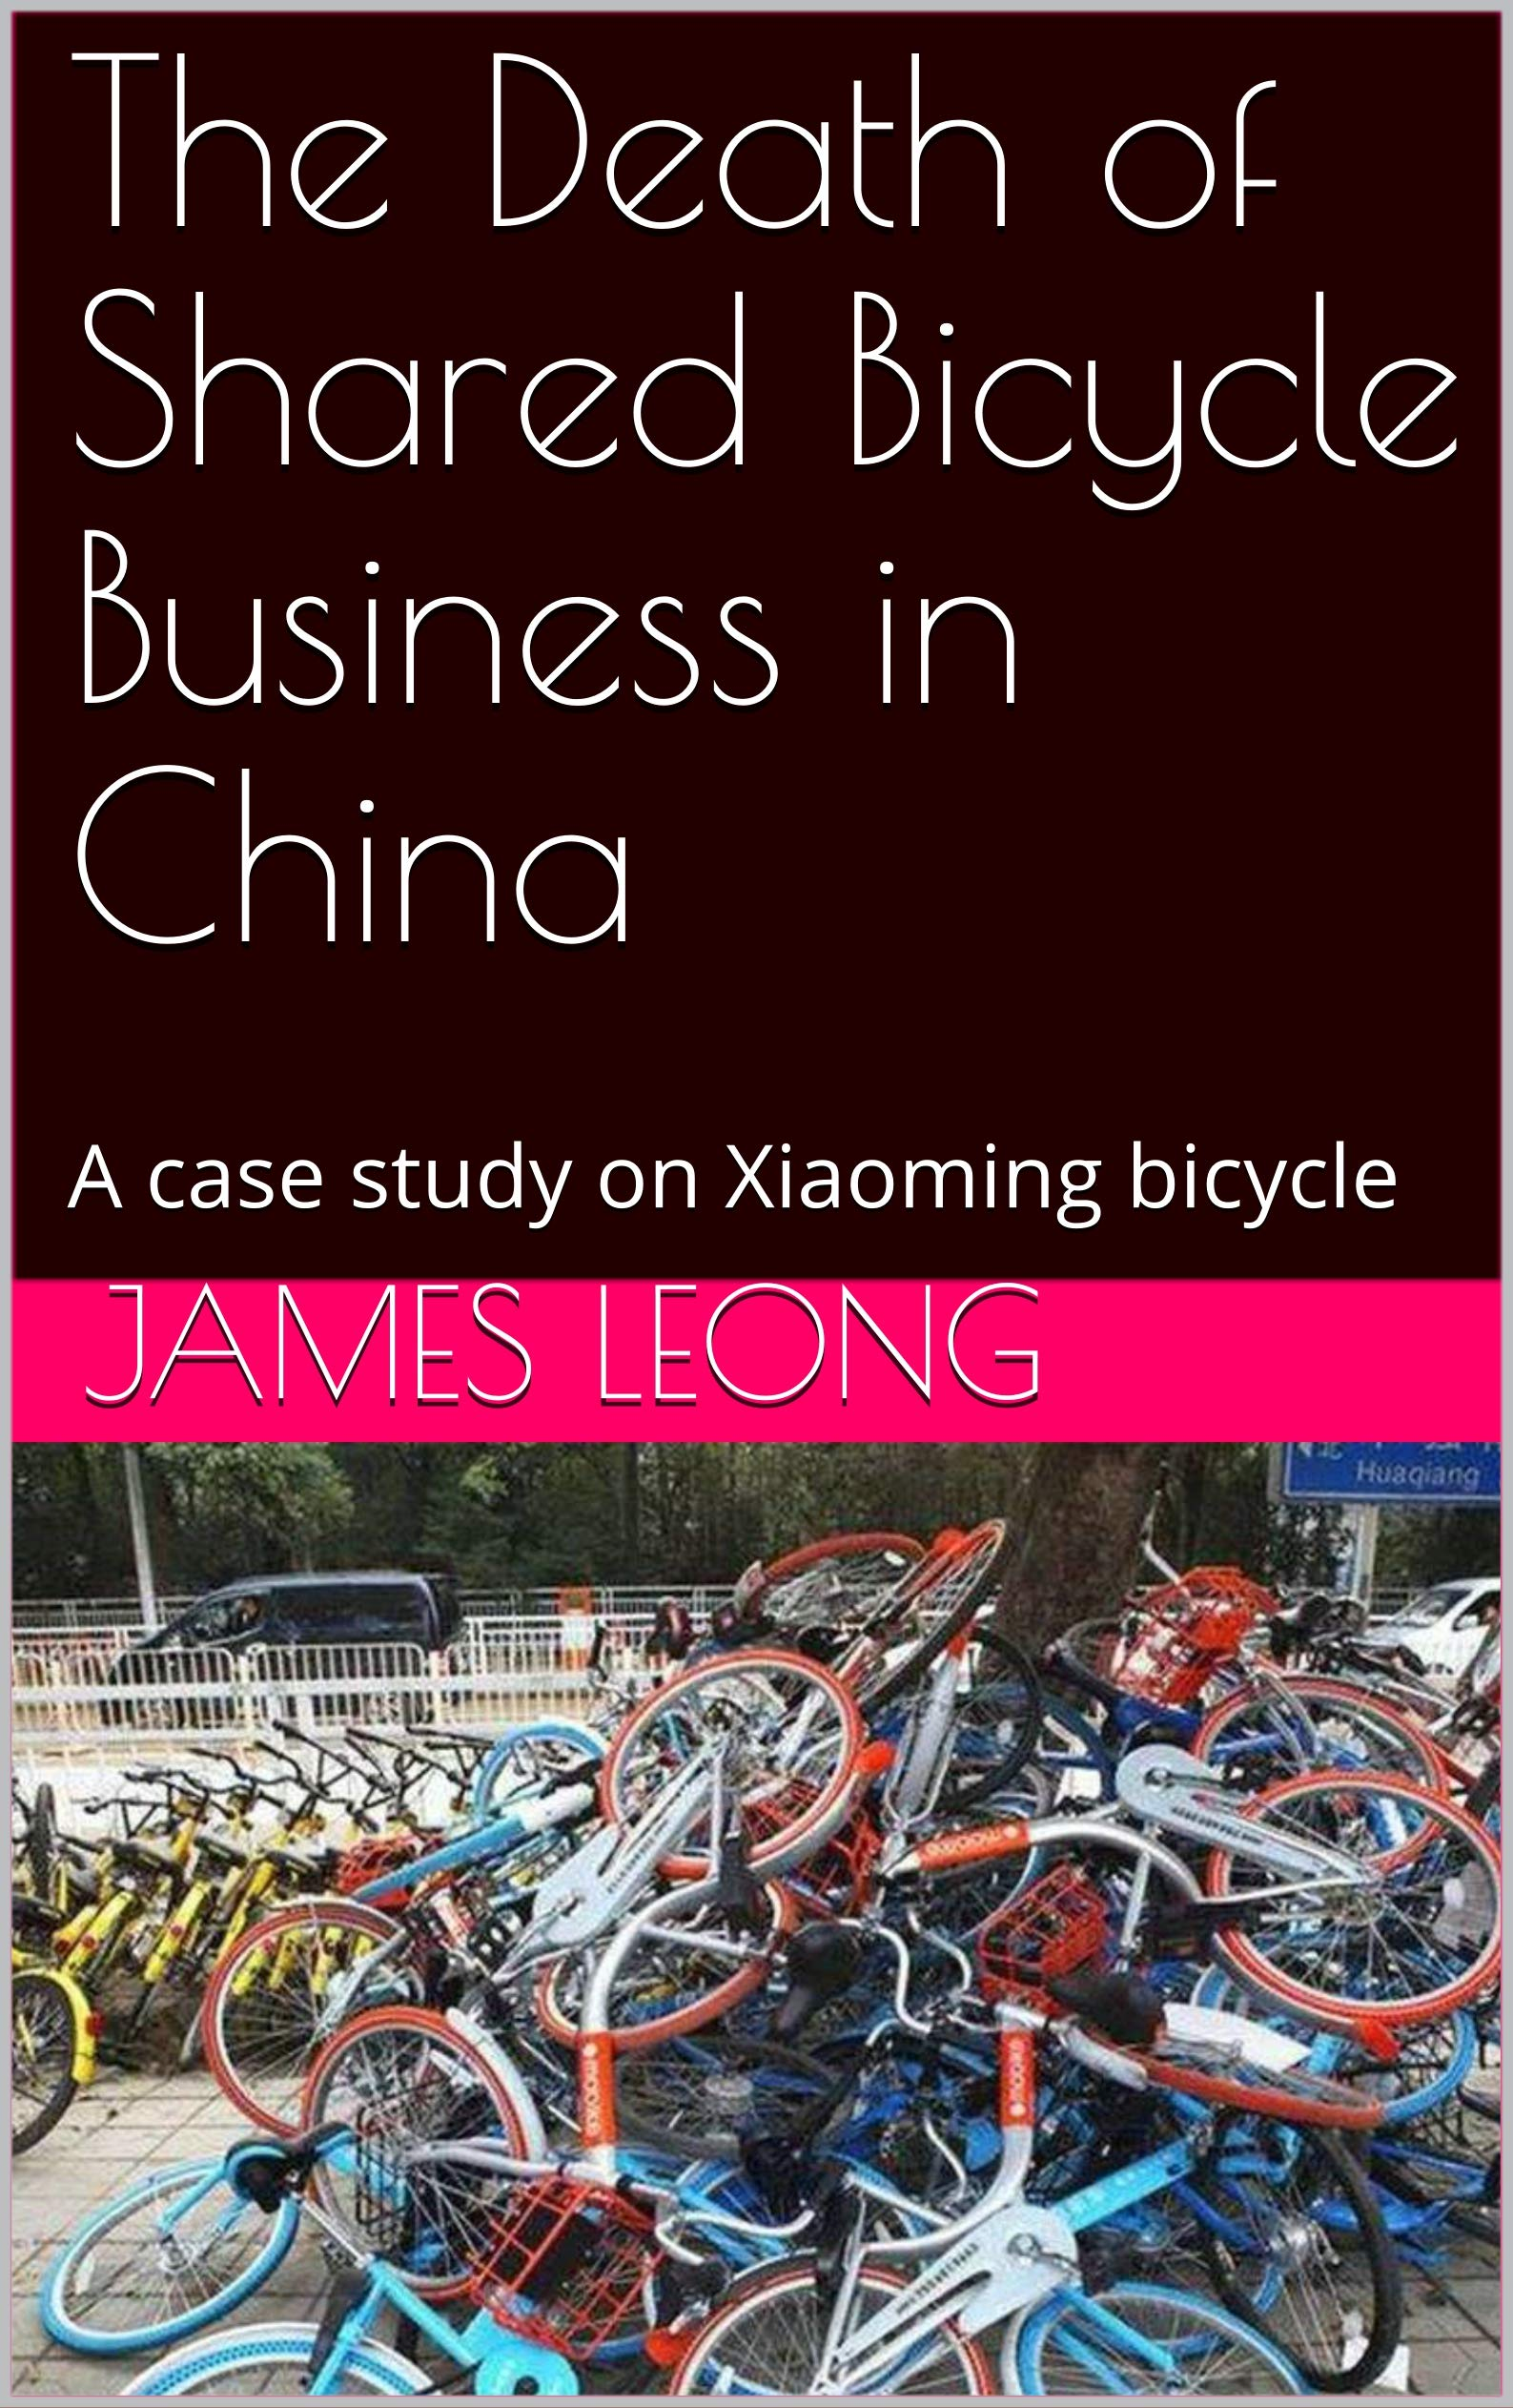 The Death of Shared Bicycle Business in China: A case study on Xiaoming bicycle